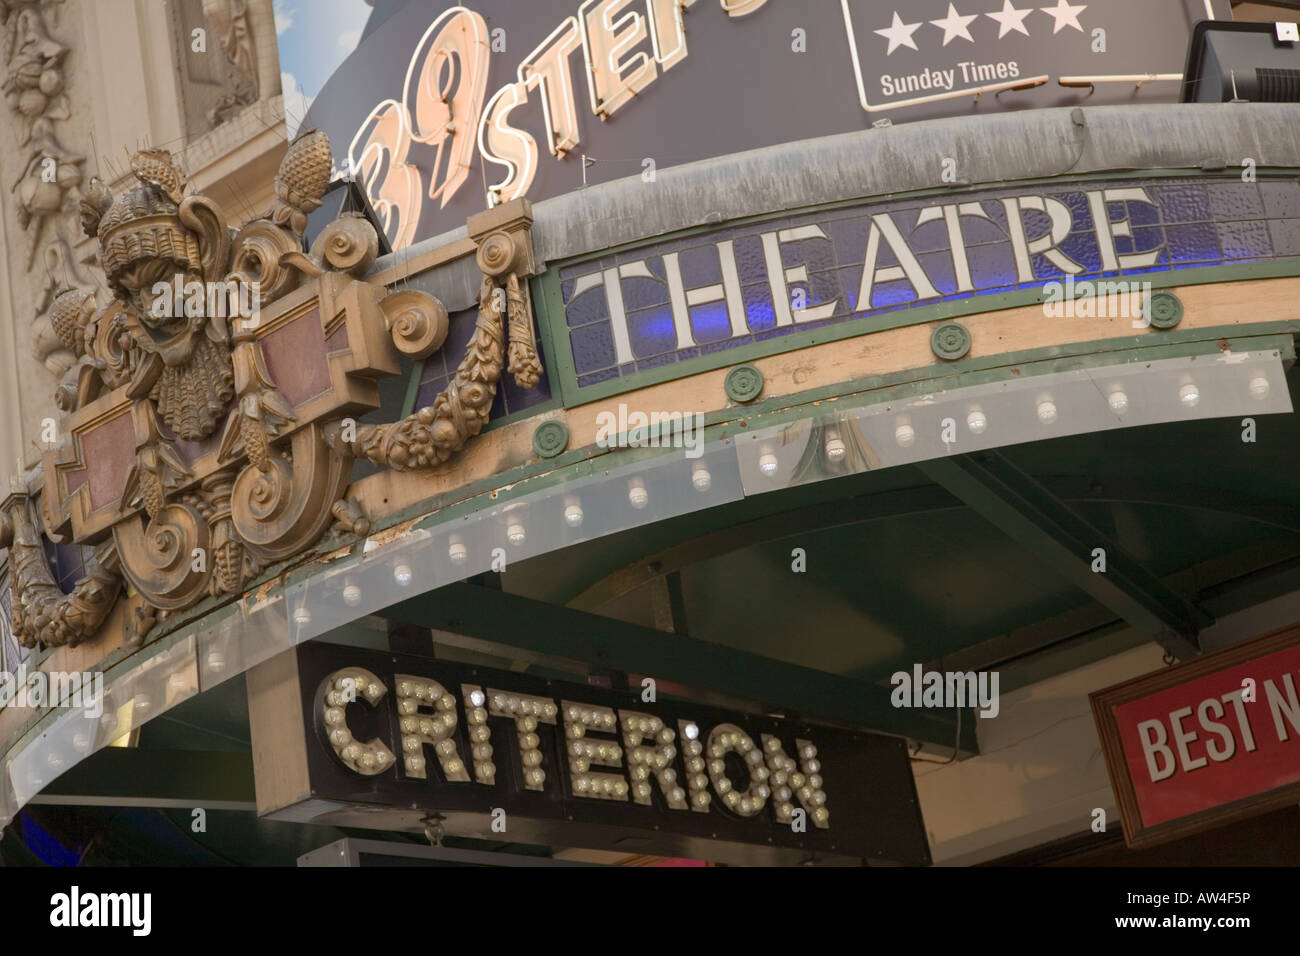 Criterion Theatre in London - Stock Image